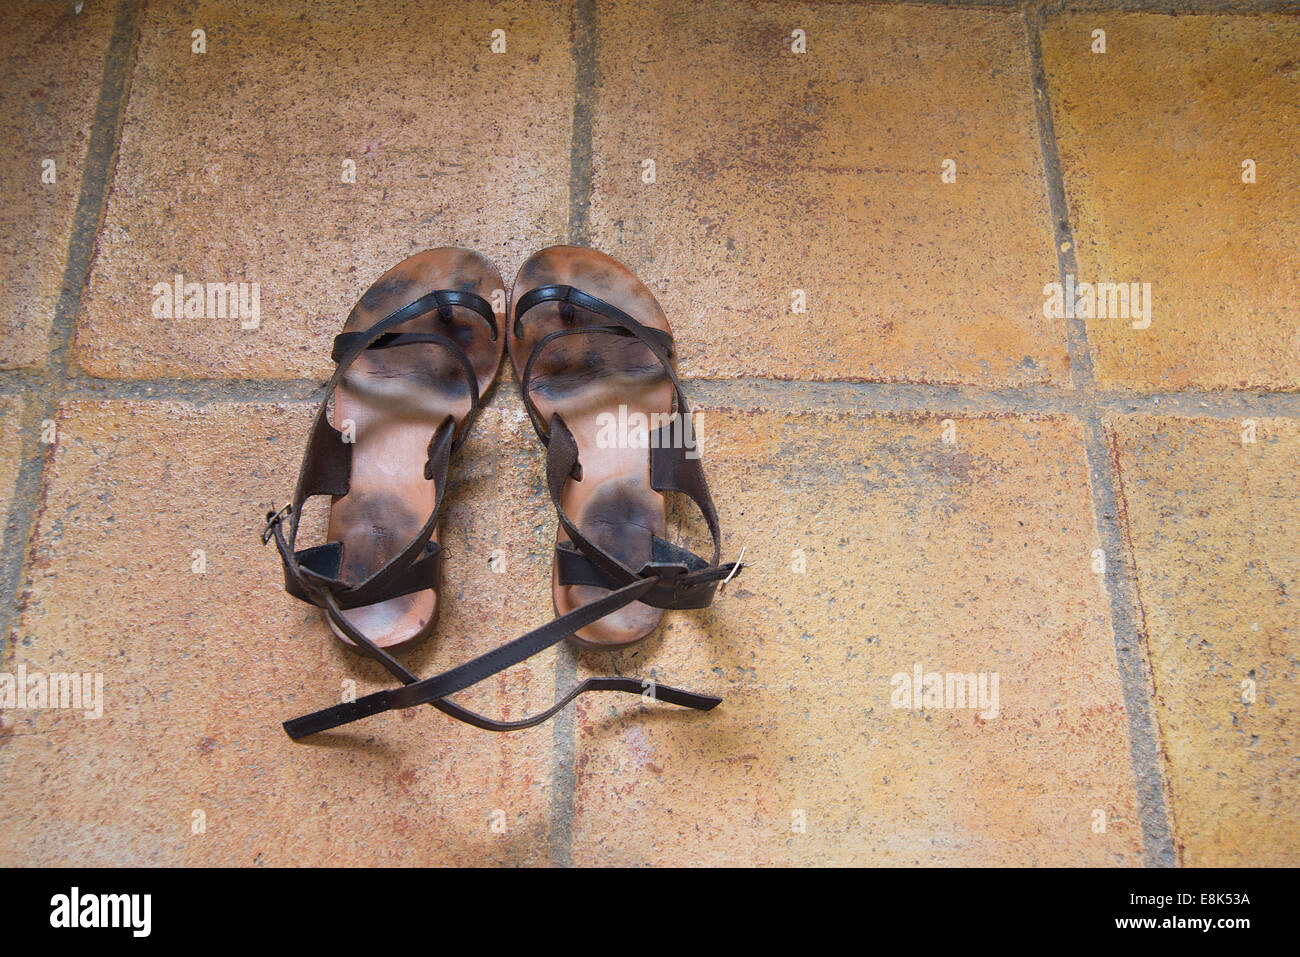 Pair of old sandals. - Stock Image